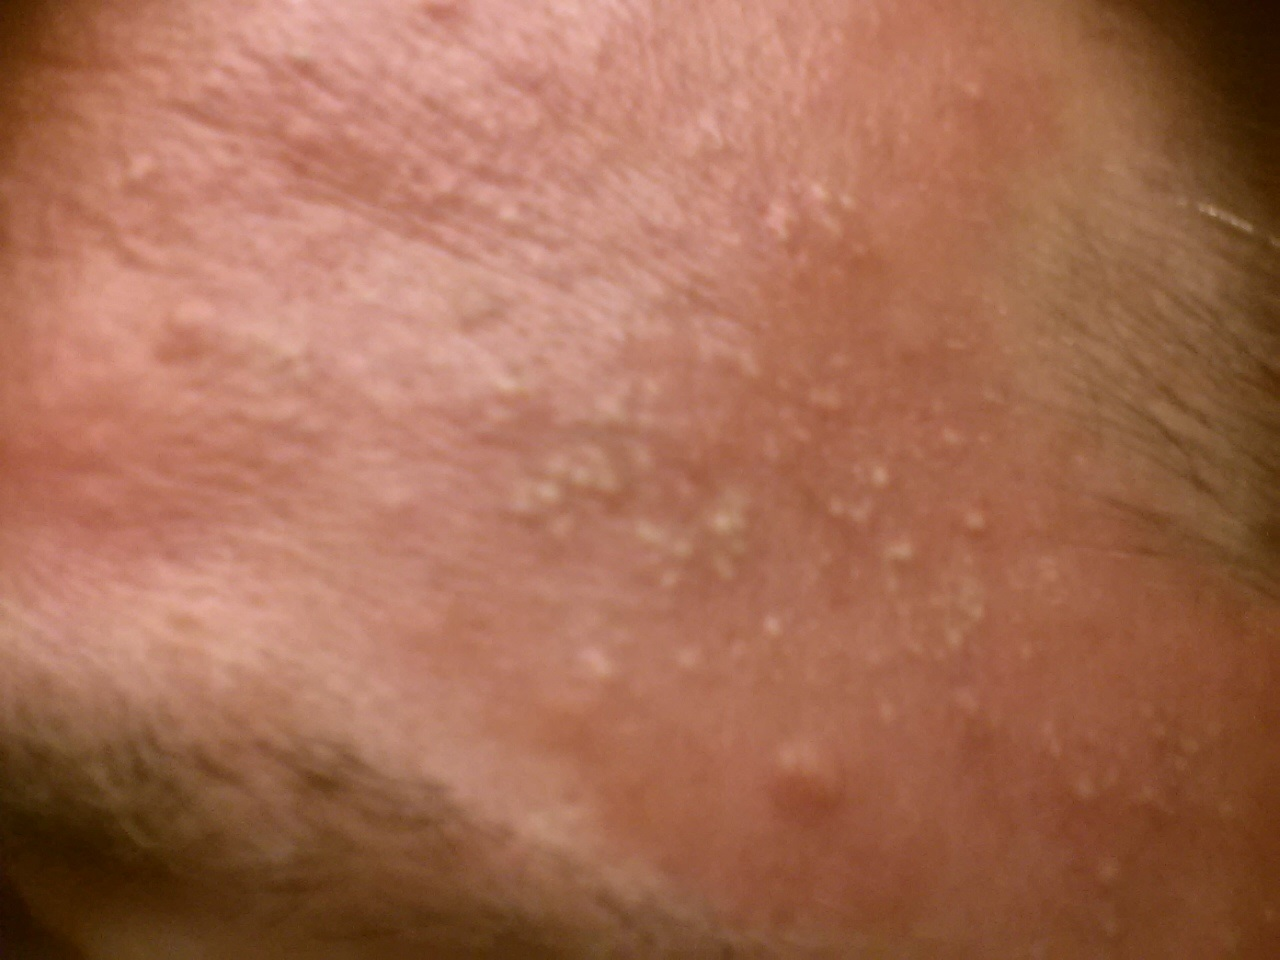 small raised bumps on forehead - pictures, photos